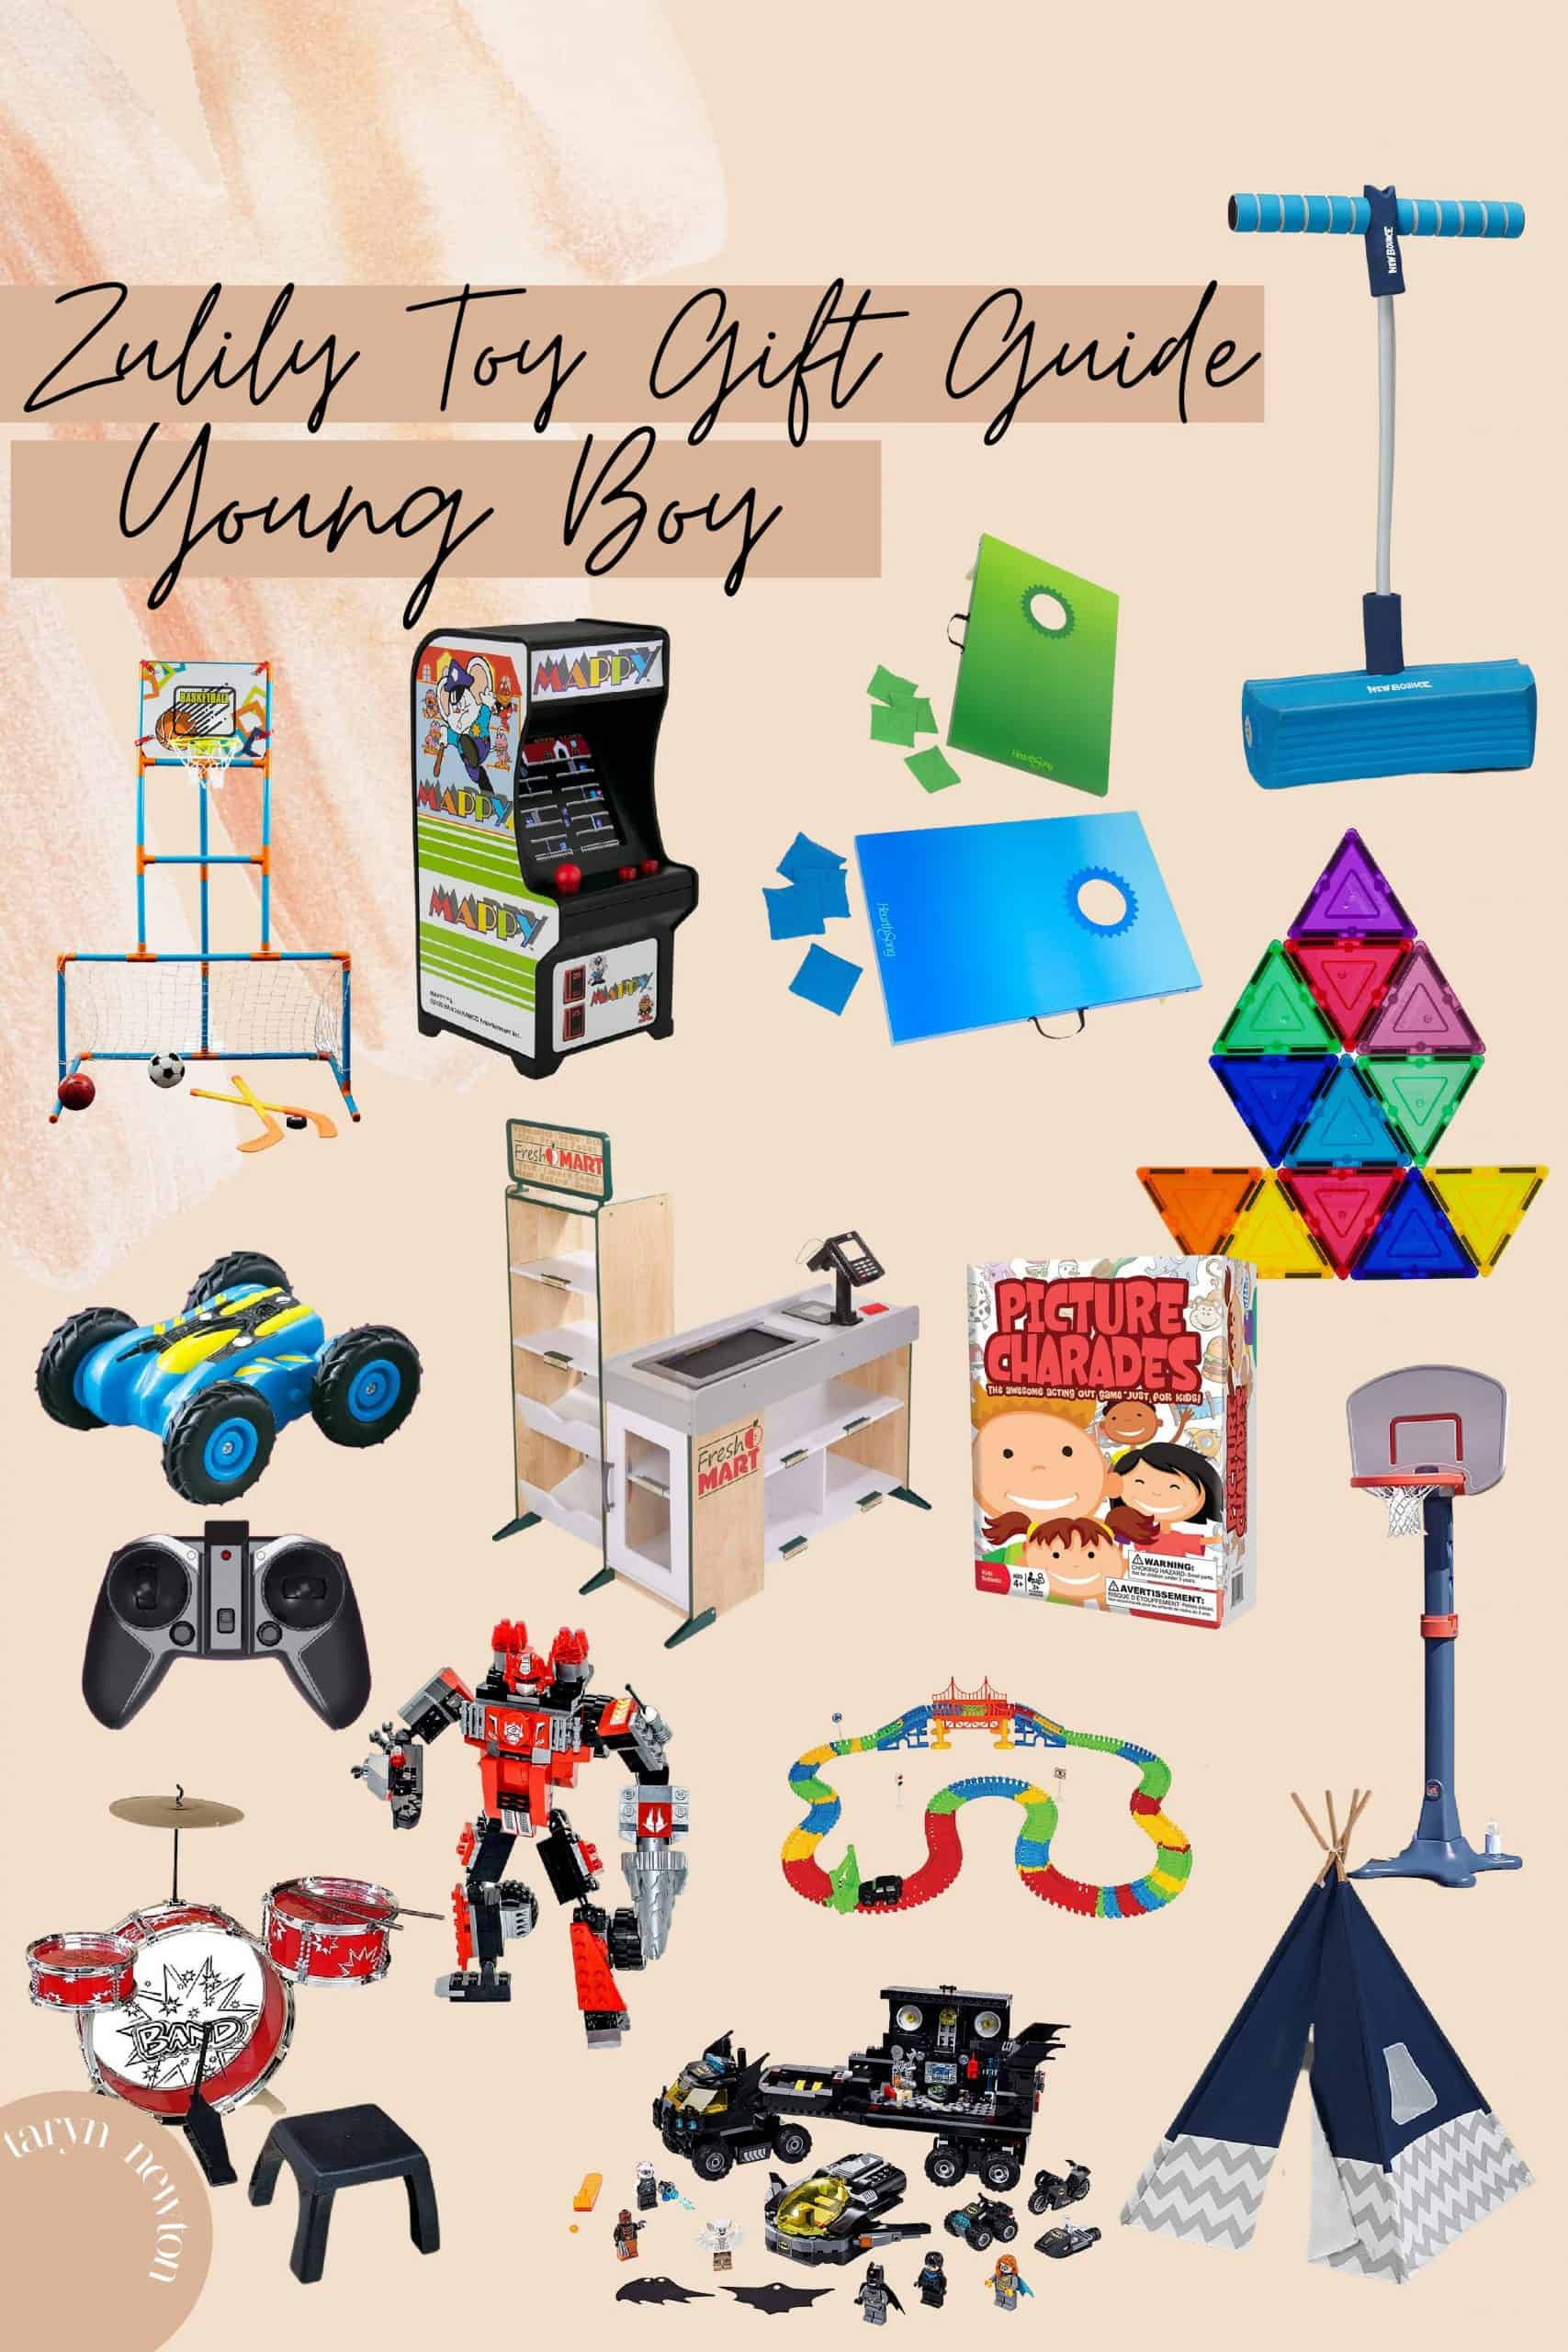 Last Minute Gift Ideas by popular Dallas life and style blog, Glamorous Versatility: collage image of a remote control car, drum set, tee pee, magna tiles, picture charade, play store set, arcade game, bean bag toss, pogo stick and basketball hoop.